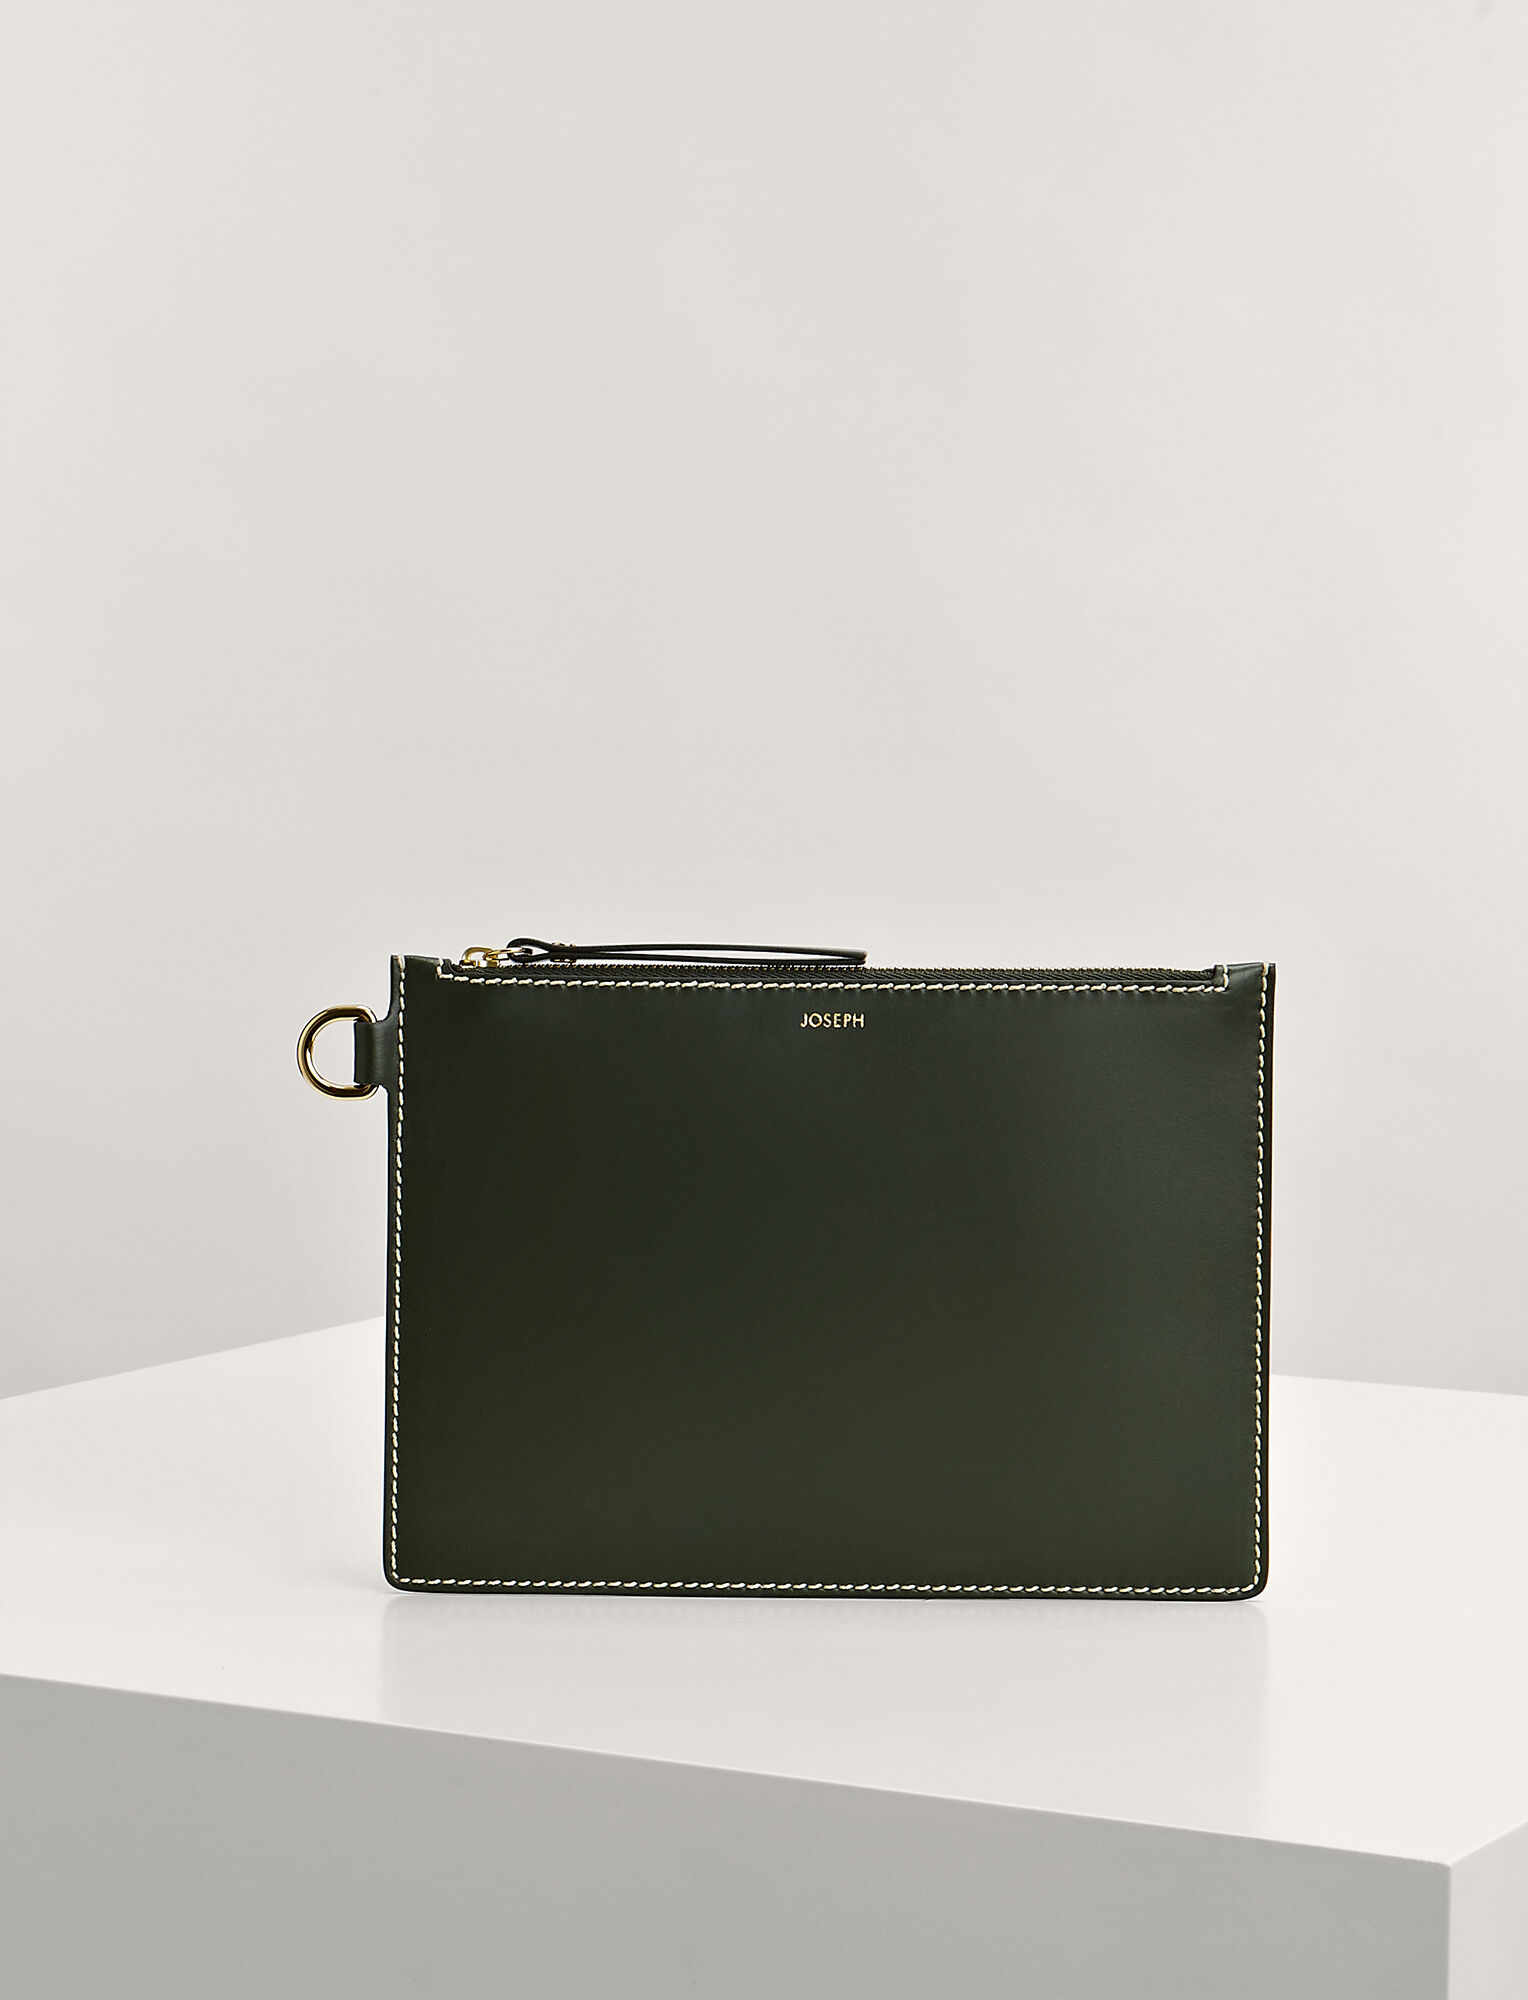 Joseph, Calf Leather Large Pouch, in FOREST